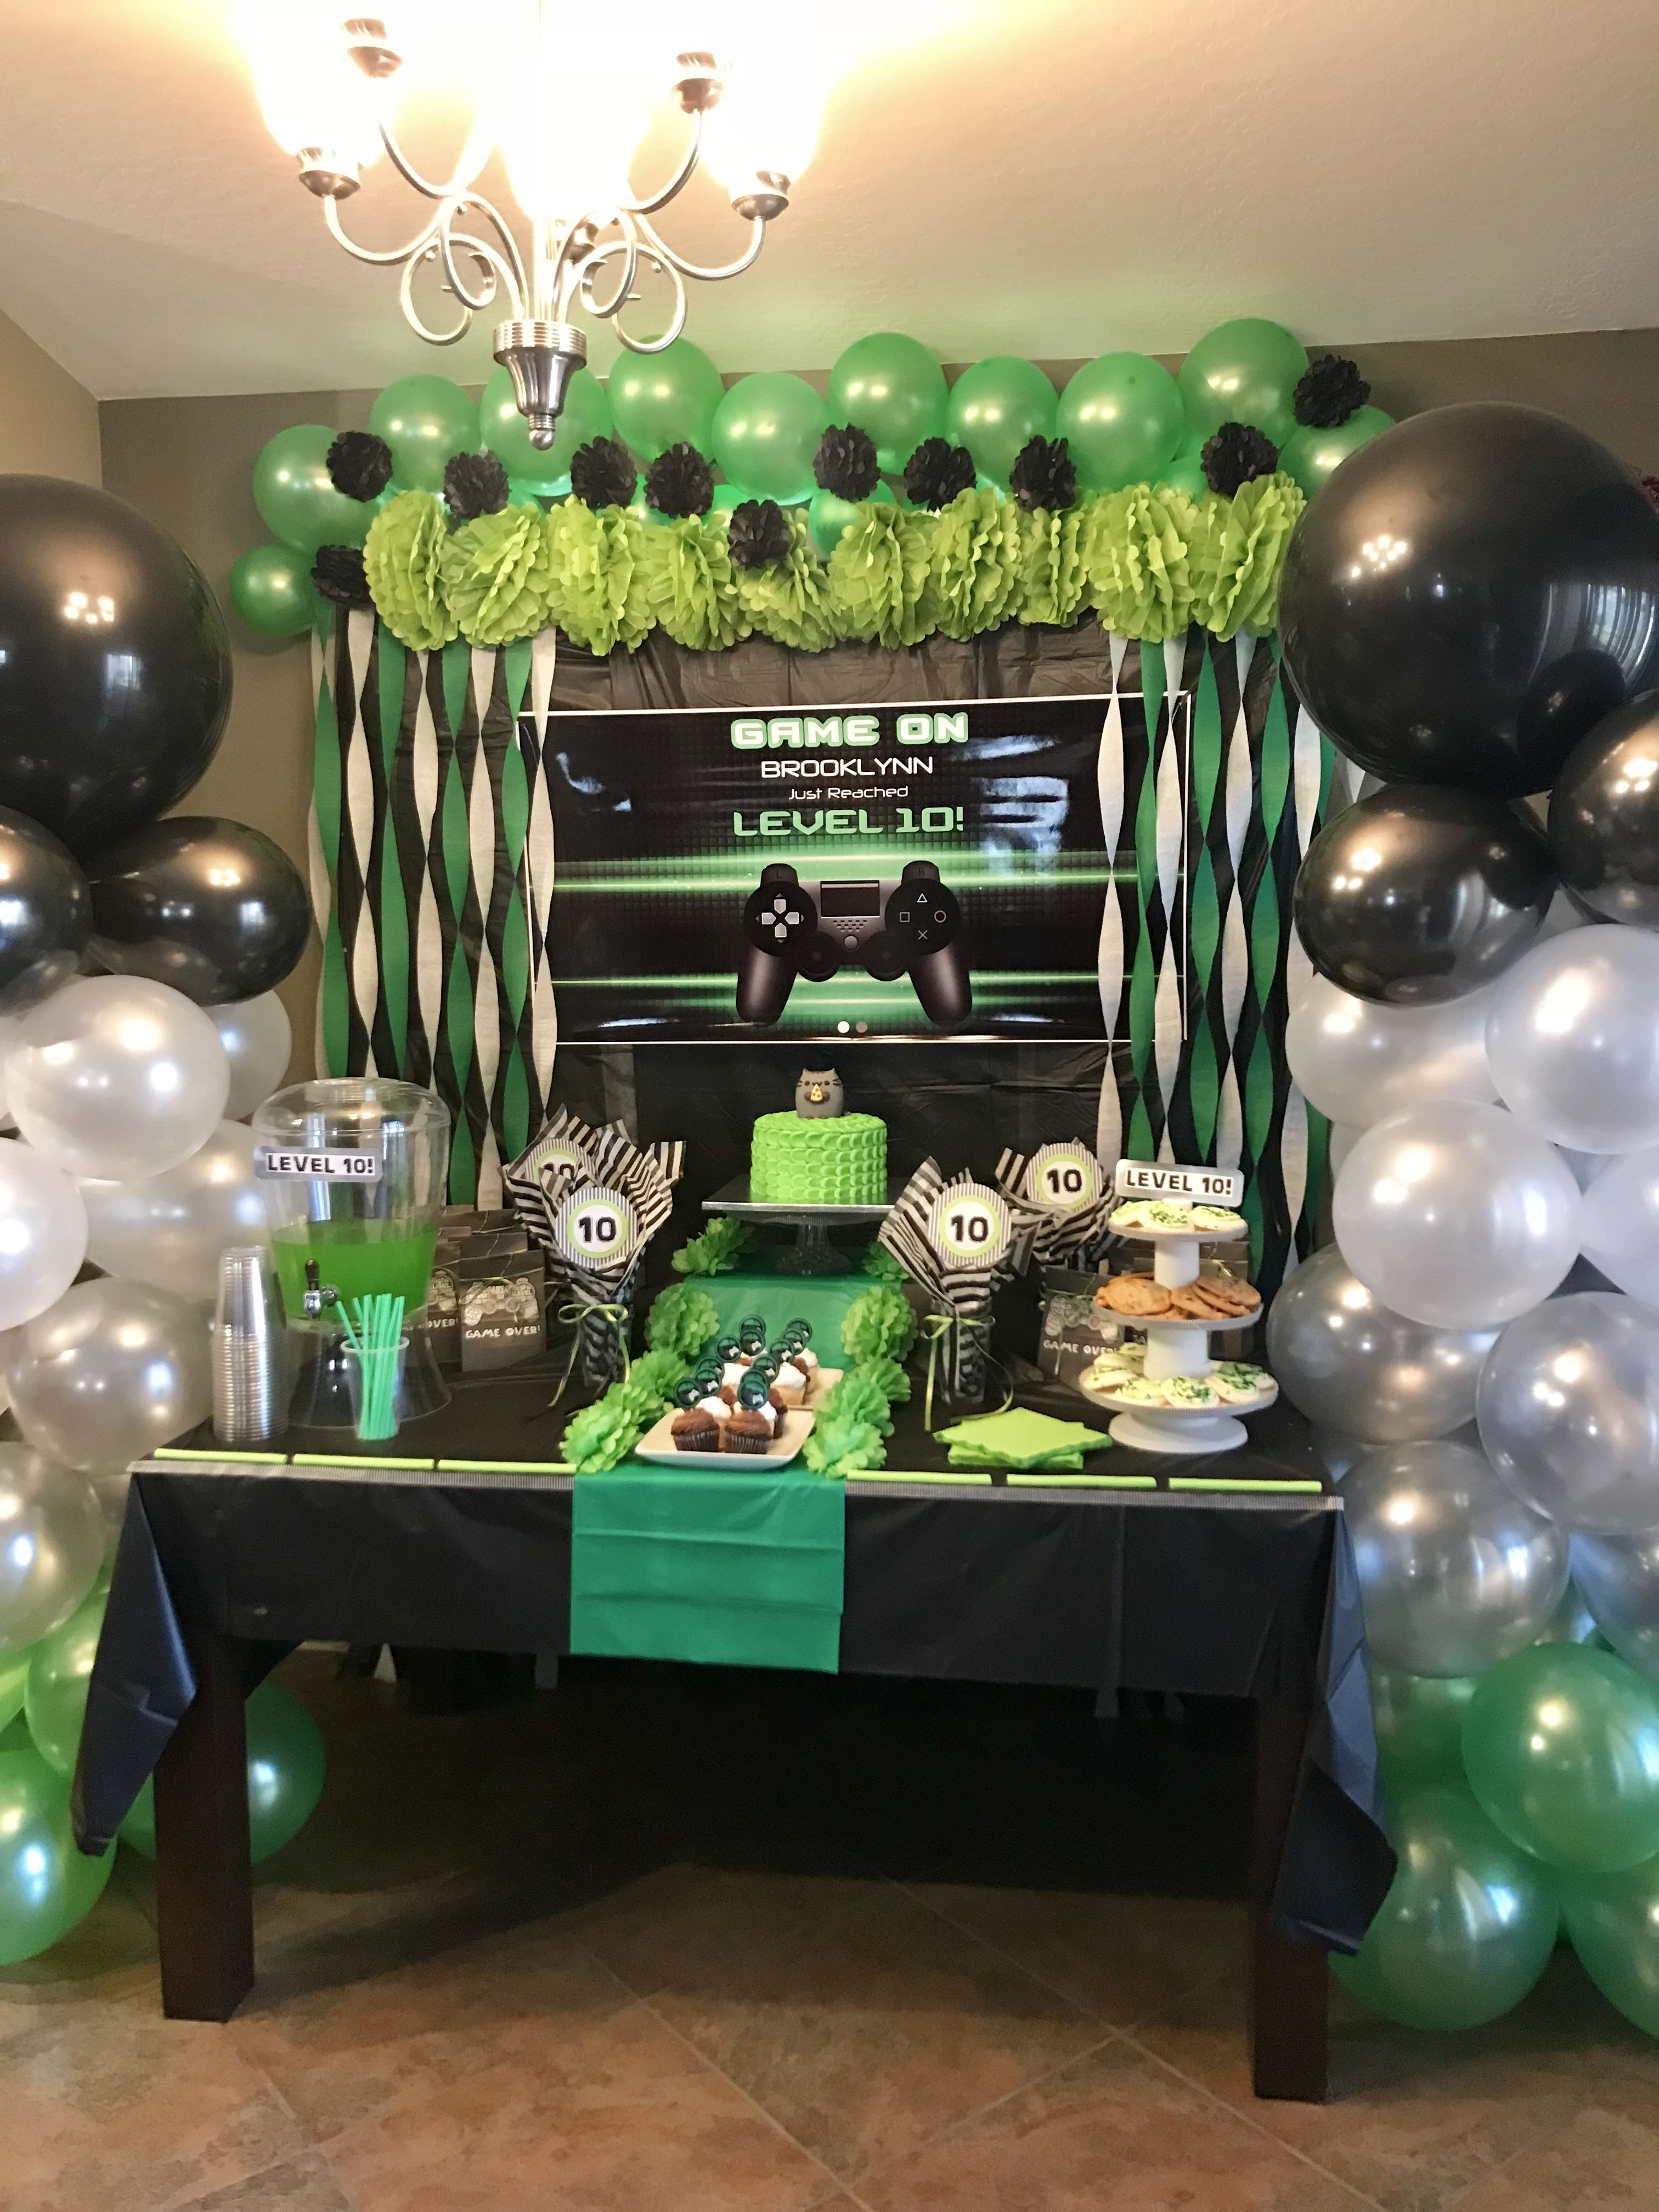 Xbox Party Video Game Birthday Party Decorations Xbox Party Xbox Birthday Party